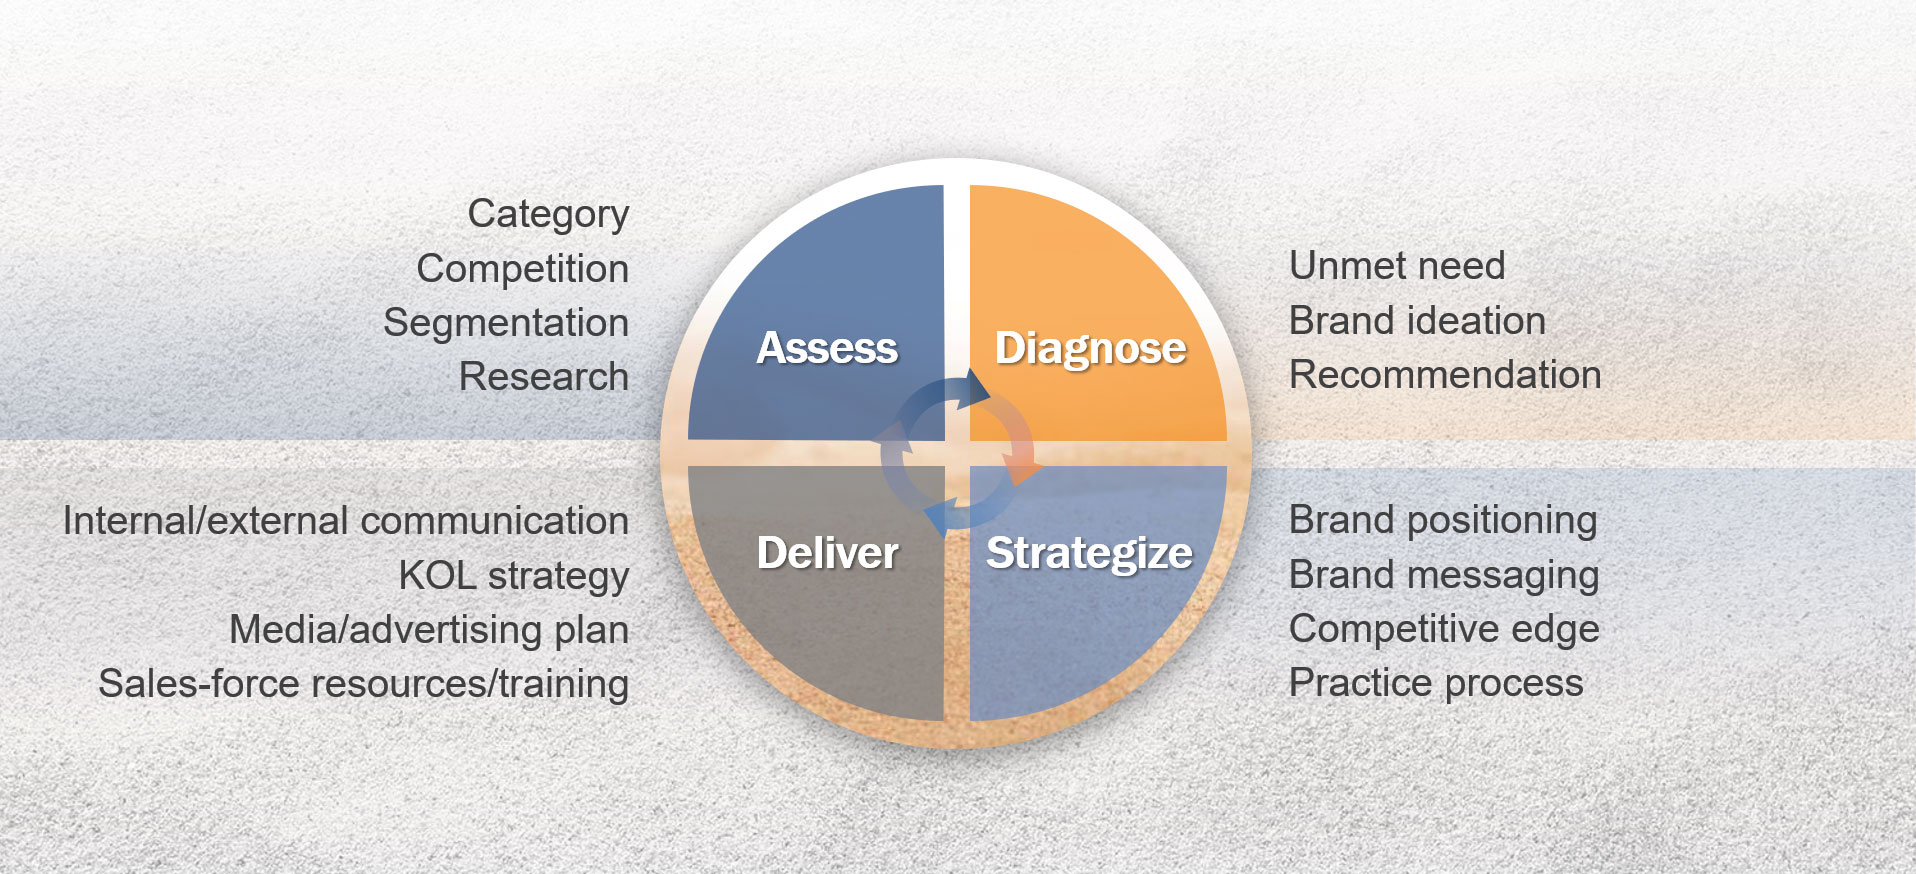 What Sandbox Strategic builds - assess, diagnose, strategies, deliver